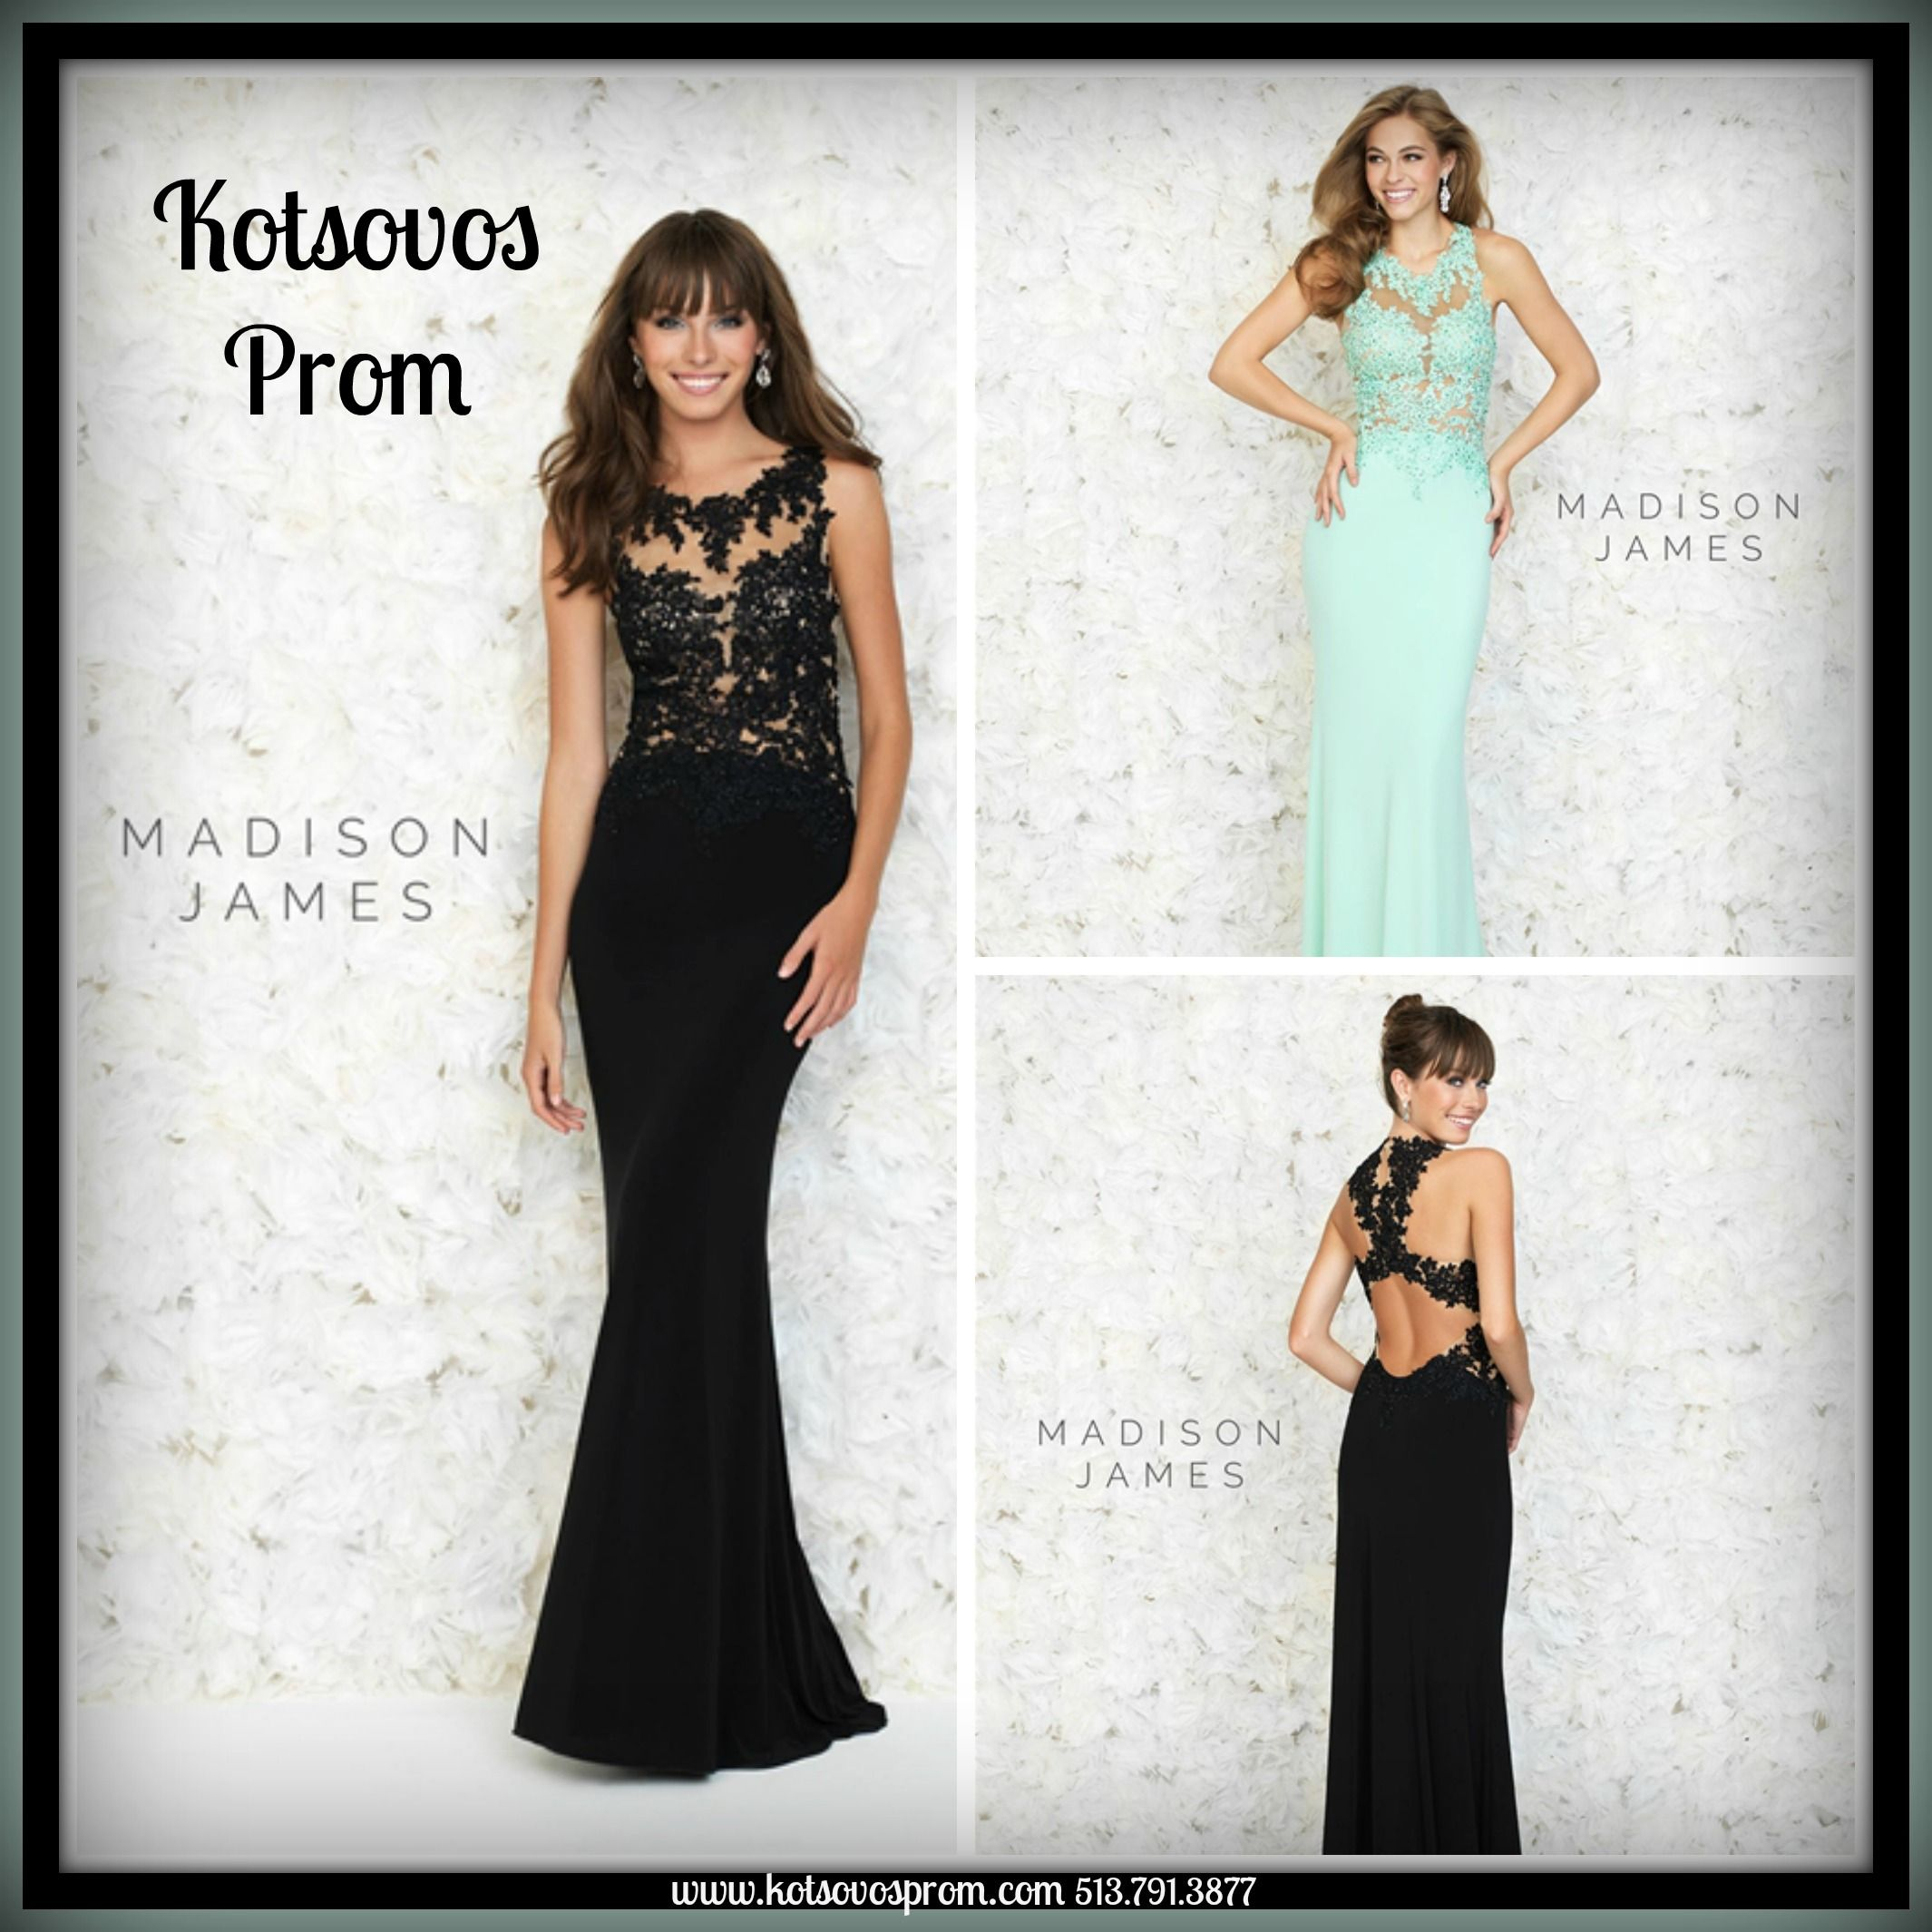 28358ca818 This captivating dress will bewitch everyone at the prom. Coming soon to  Kotsovos in Cincinnati